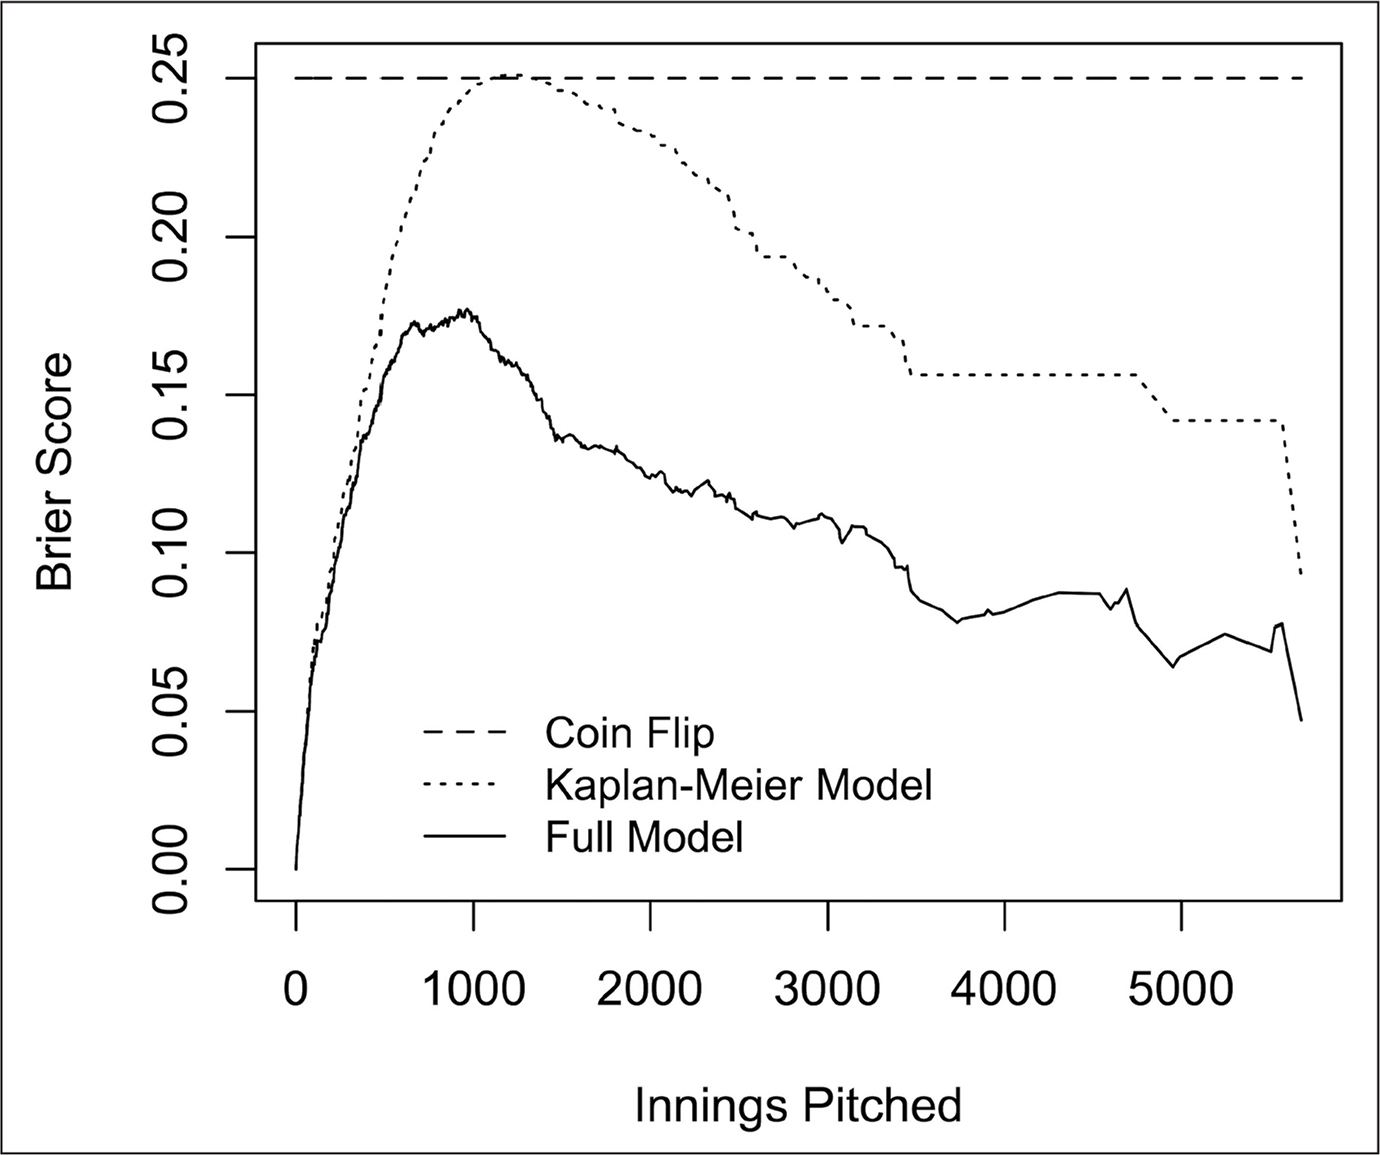 Accuracy of injury prediction with Brier score comparing predictive performance of coin flip (dashed line), the model with only pitcher demographics included (dotted line), and the full model (solid line) including the effect of the technique components. This illustrates that including the technique components significantly improved the prediction power of the model, and the model accuracy improves as the innings pitched increases.